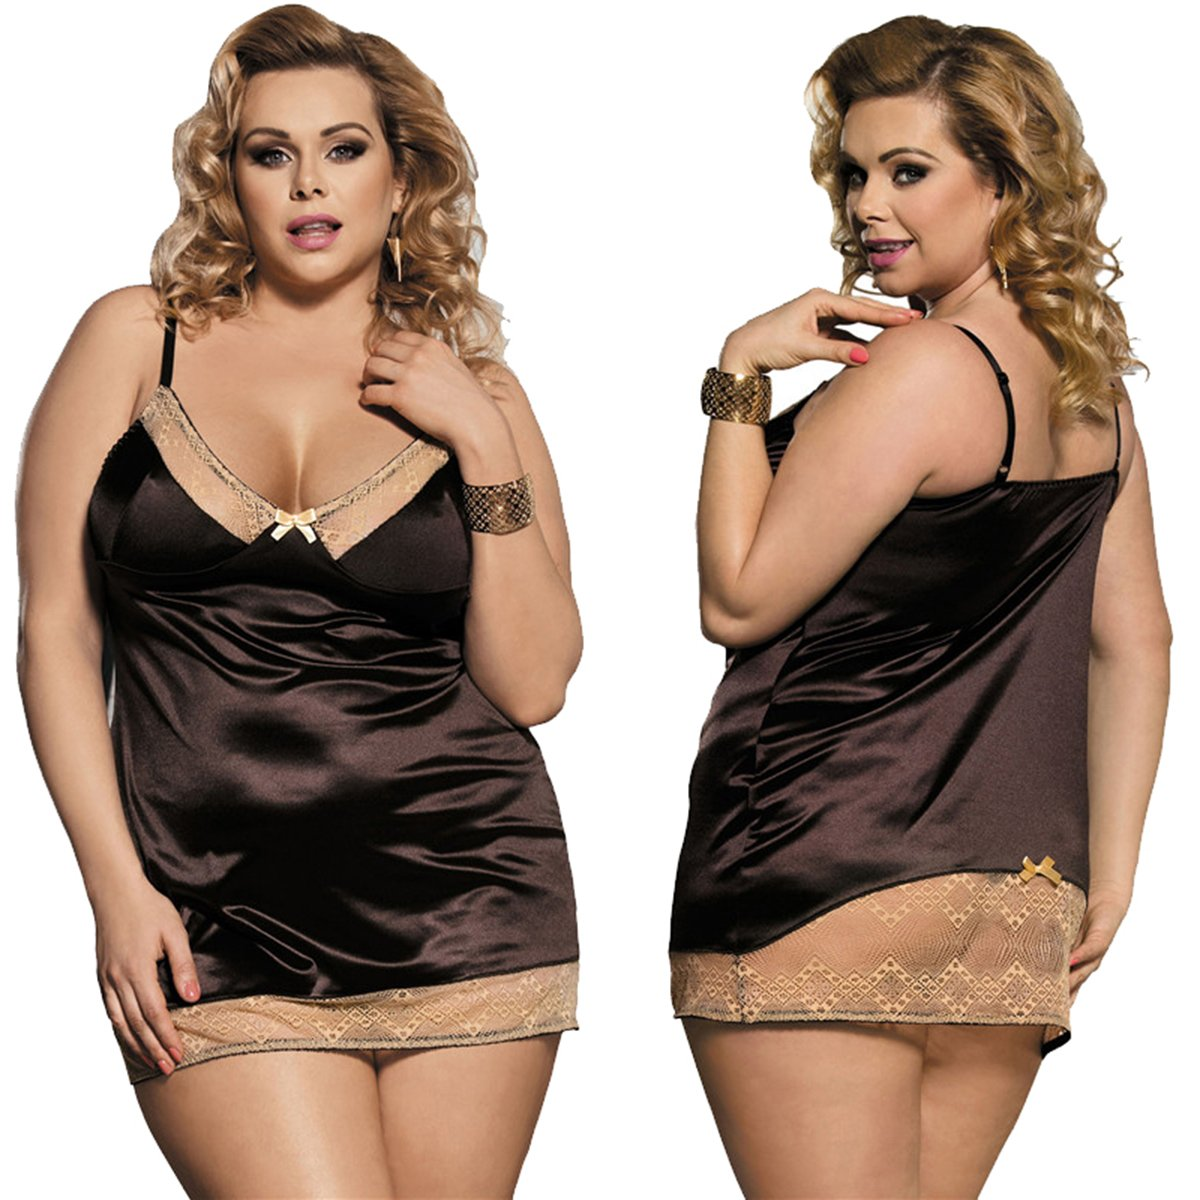 marysgift Donna Babydoll Lingerie Lace Donne Floreale Intimo Breve Notte Abito da Notte.